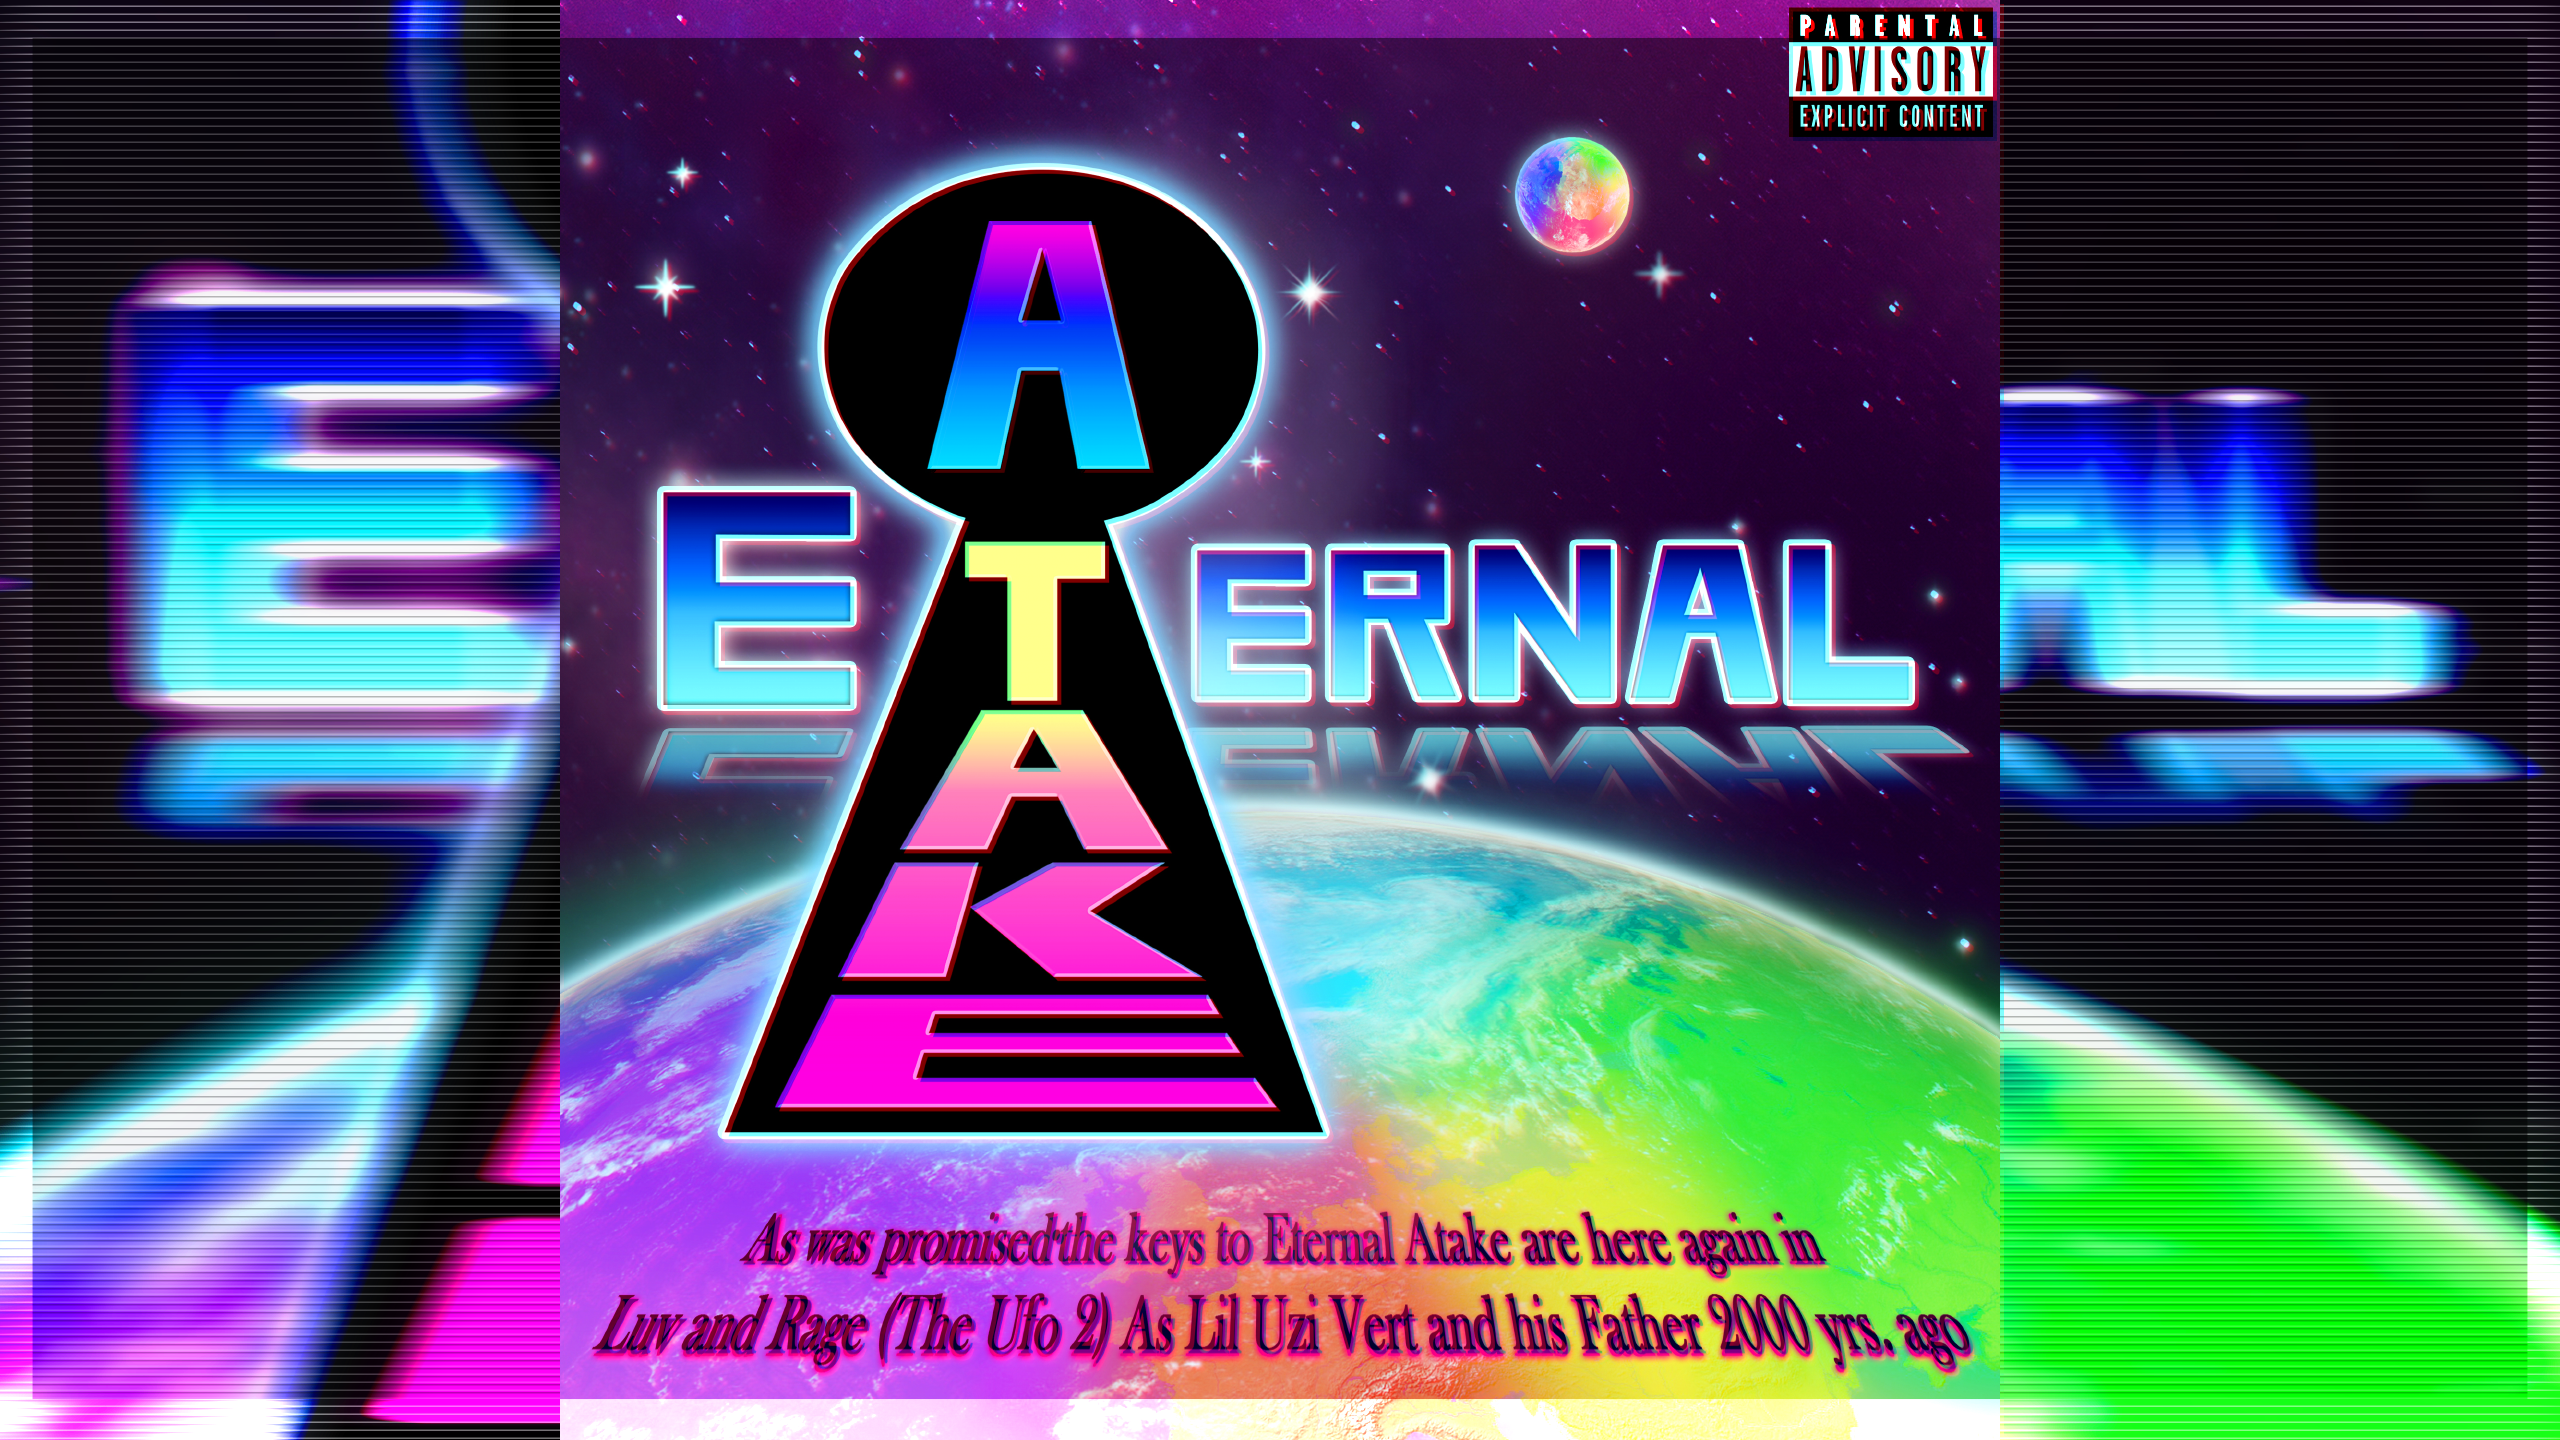 Eternal Atake Wallpapers Top Free Eternal Atake Backgrounds Wallpaperaccess Check out this fantastic collection of lil uzi vert wallpapers, with 36 lil uzi vert background images for your desktop, phone or tablet. eternal atake wallpapers top free